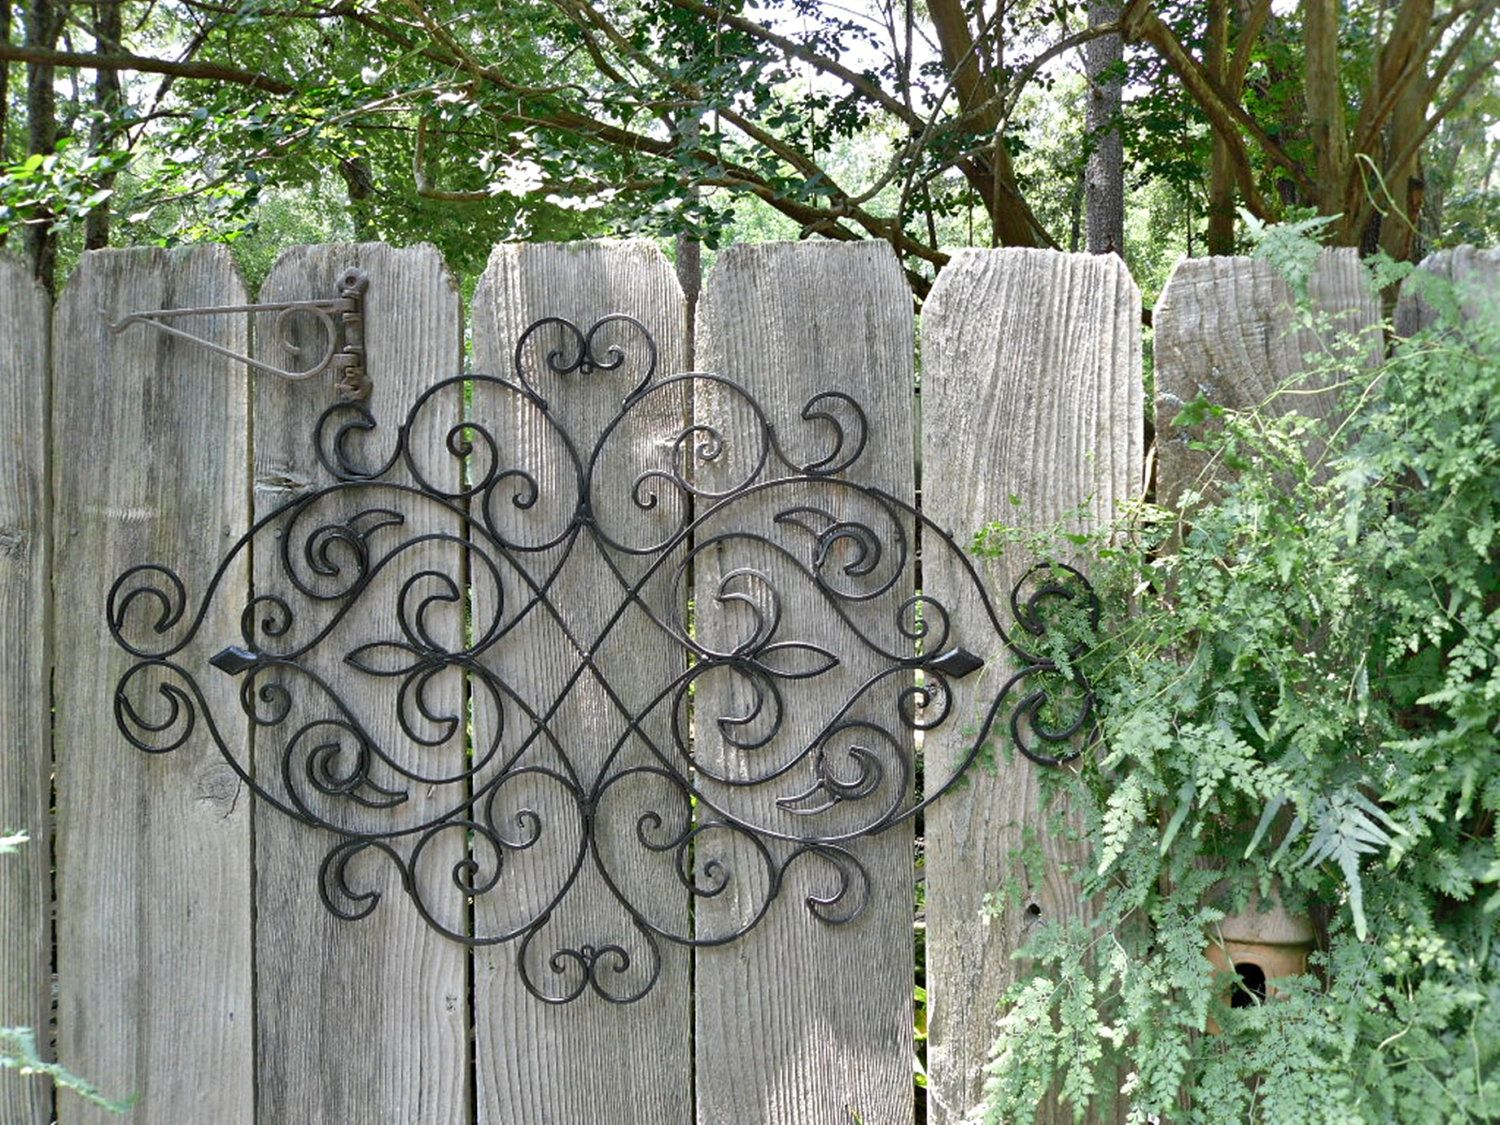 Wrought iron outdoor decor - Find This Pin And More On Ideas Outside Wrought Iron Wall Decor